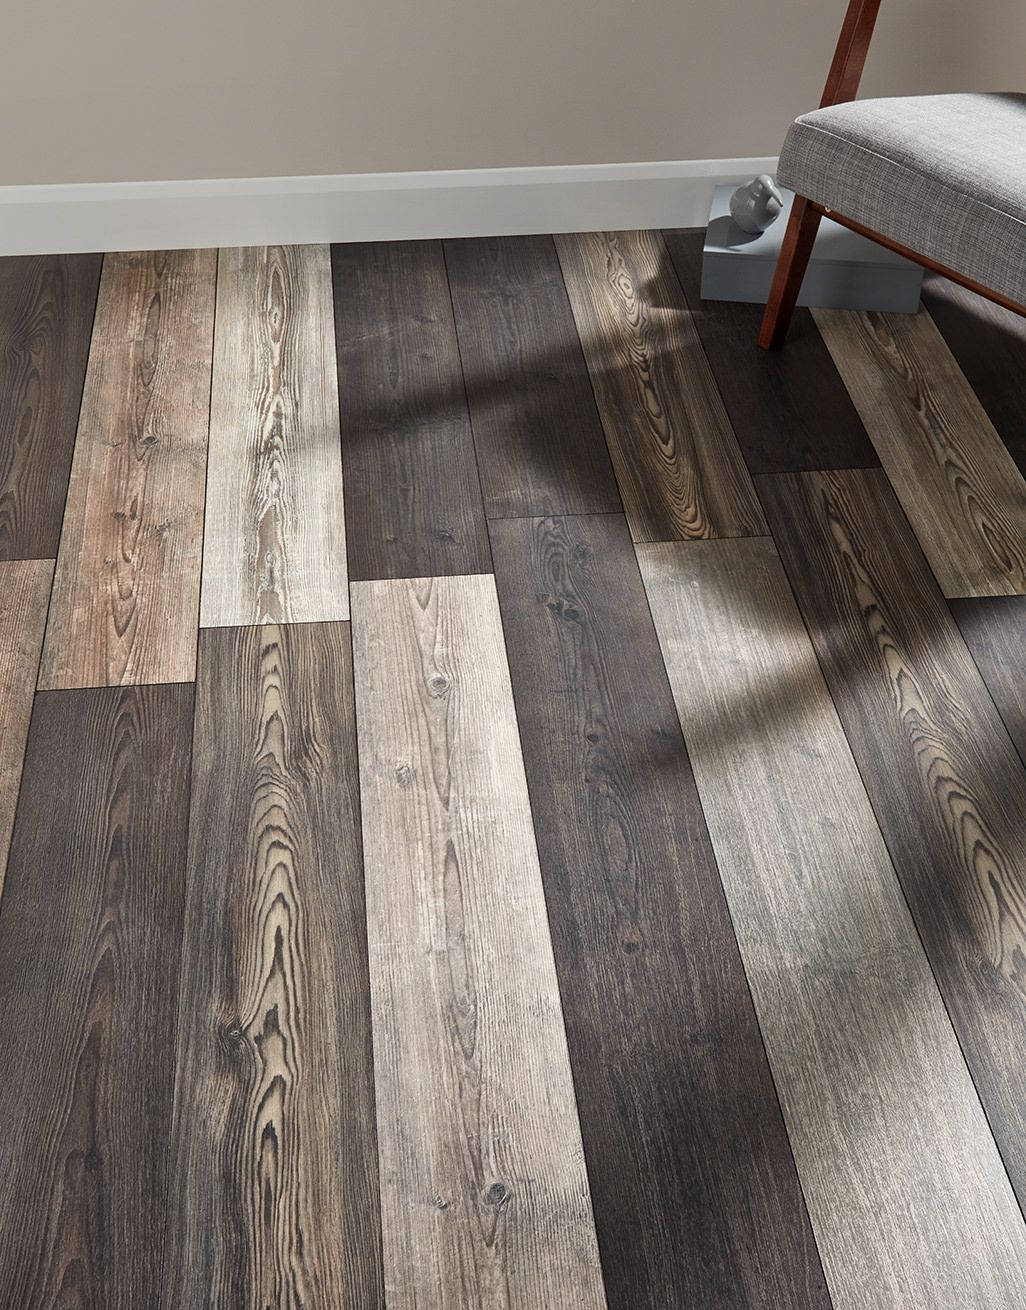 Transform A Room From Average To Stunning With The Elegant Nordic Pine 12mm Laminate Floor Made With An Authen Direct Wood Flooring Laminate Flooring Flooring